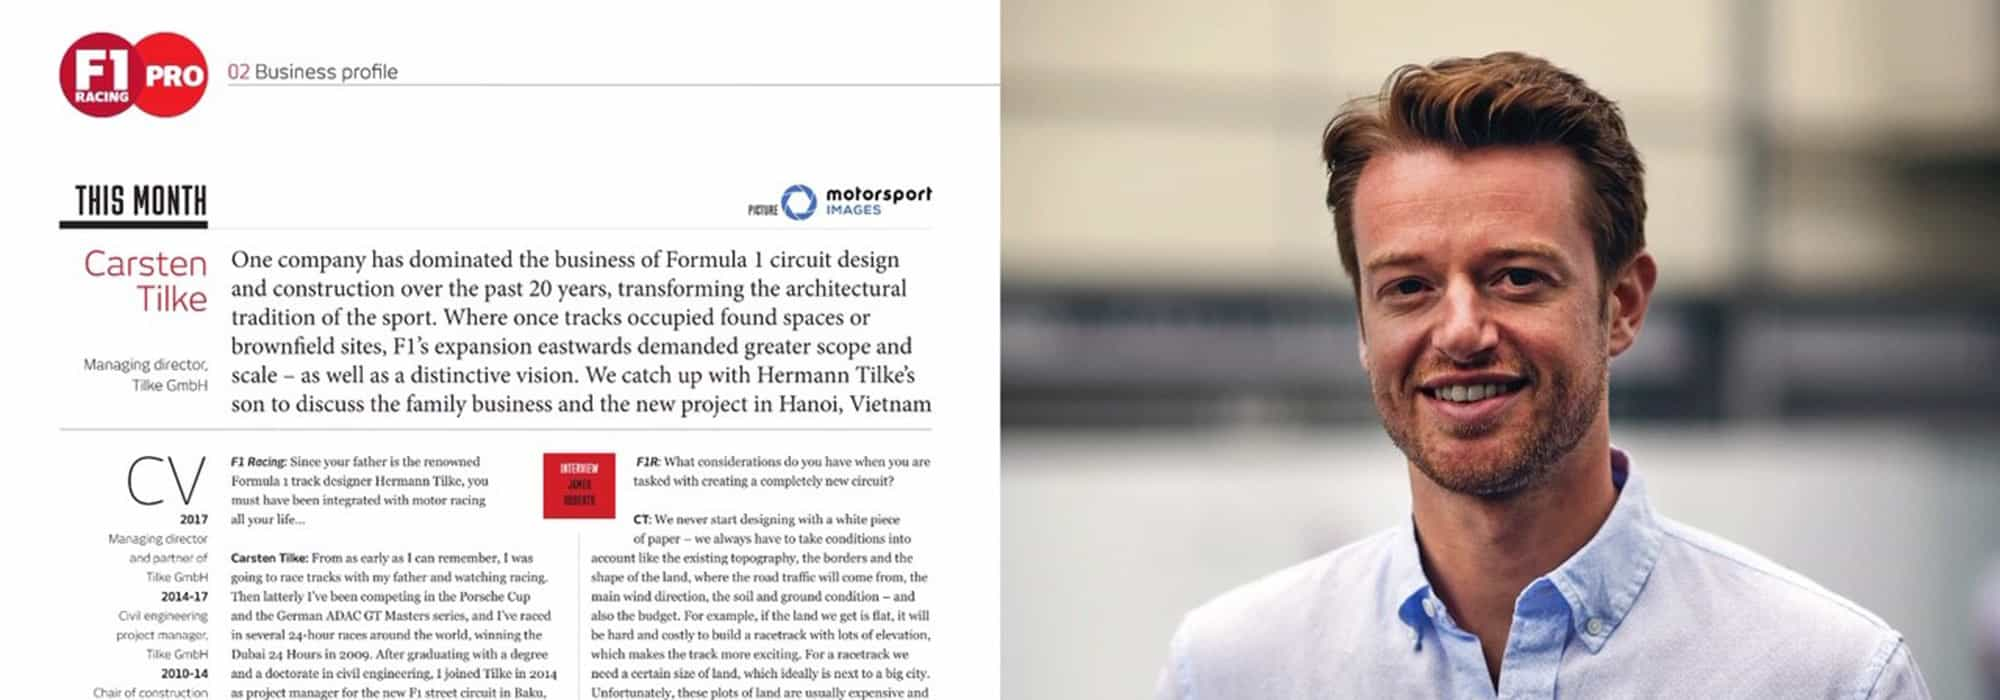 carsten f1 magazine header - Interview with Dr. Carsten Tilke